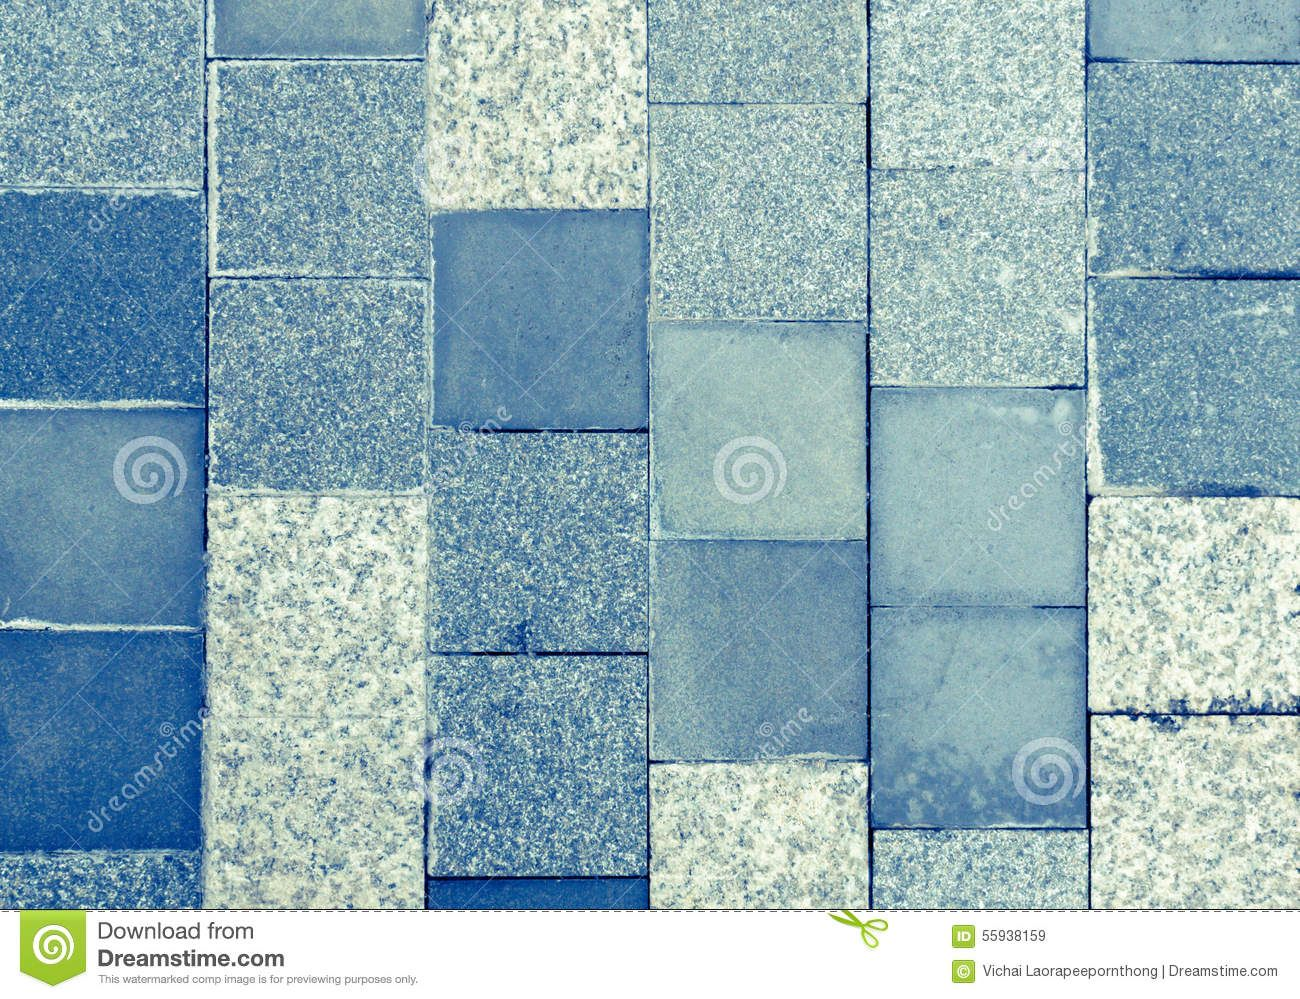 Photo About Modern Style Design Of Light Blue Marble Tile Texture Wall Floor Pattern Decorate